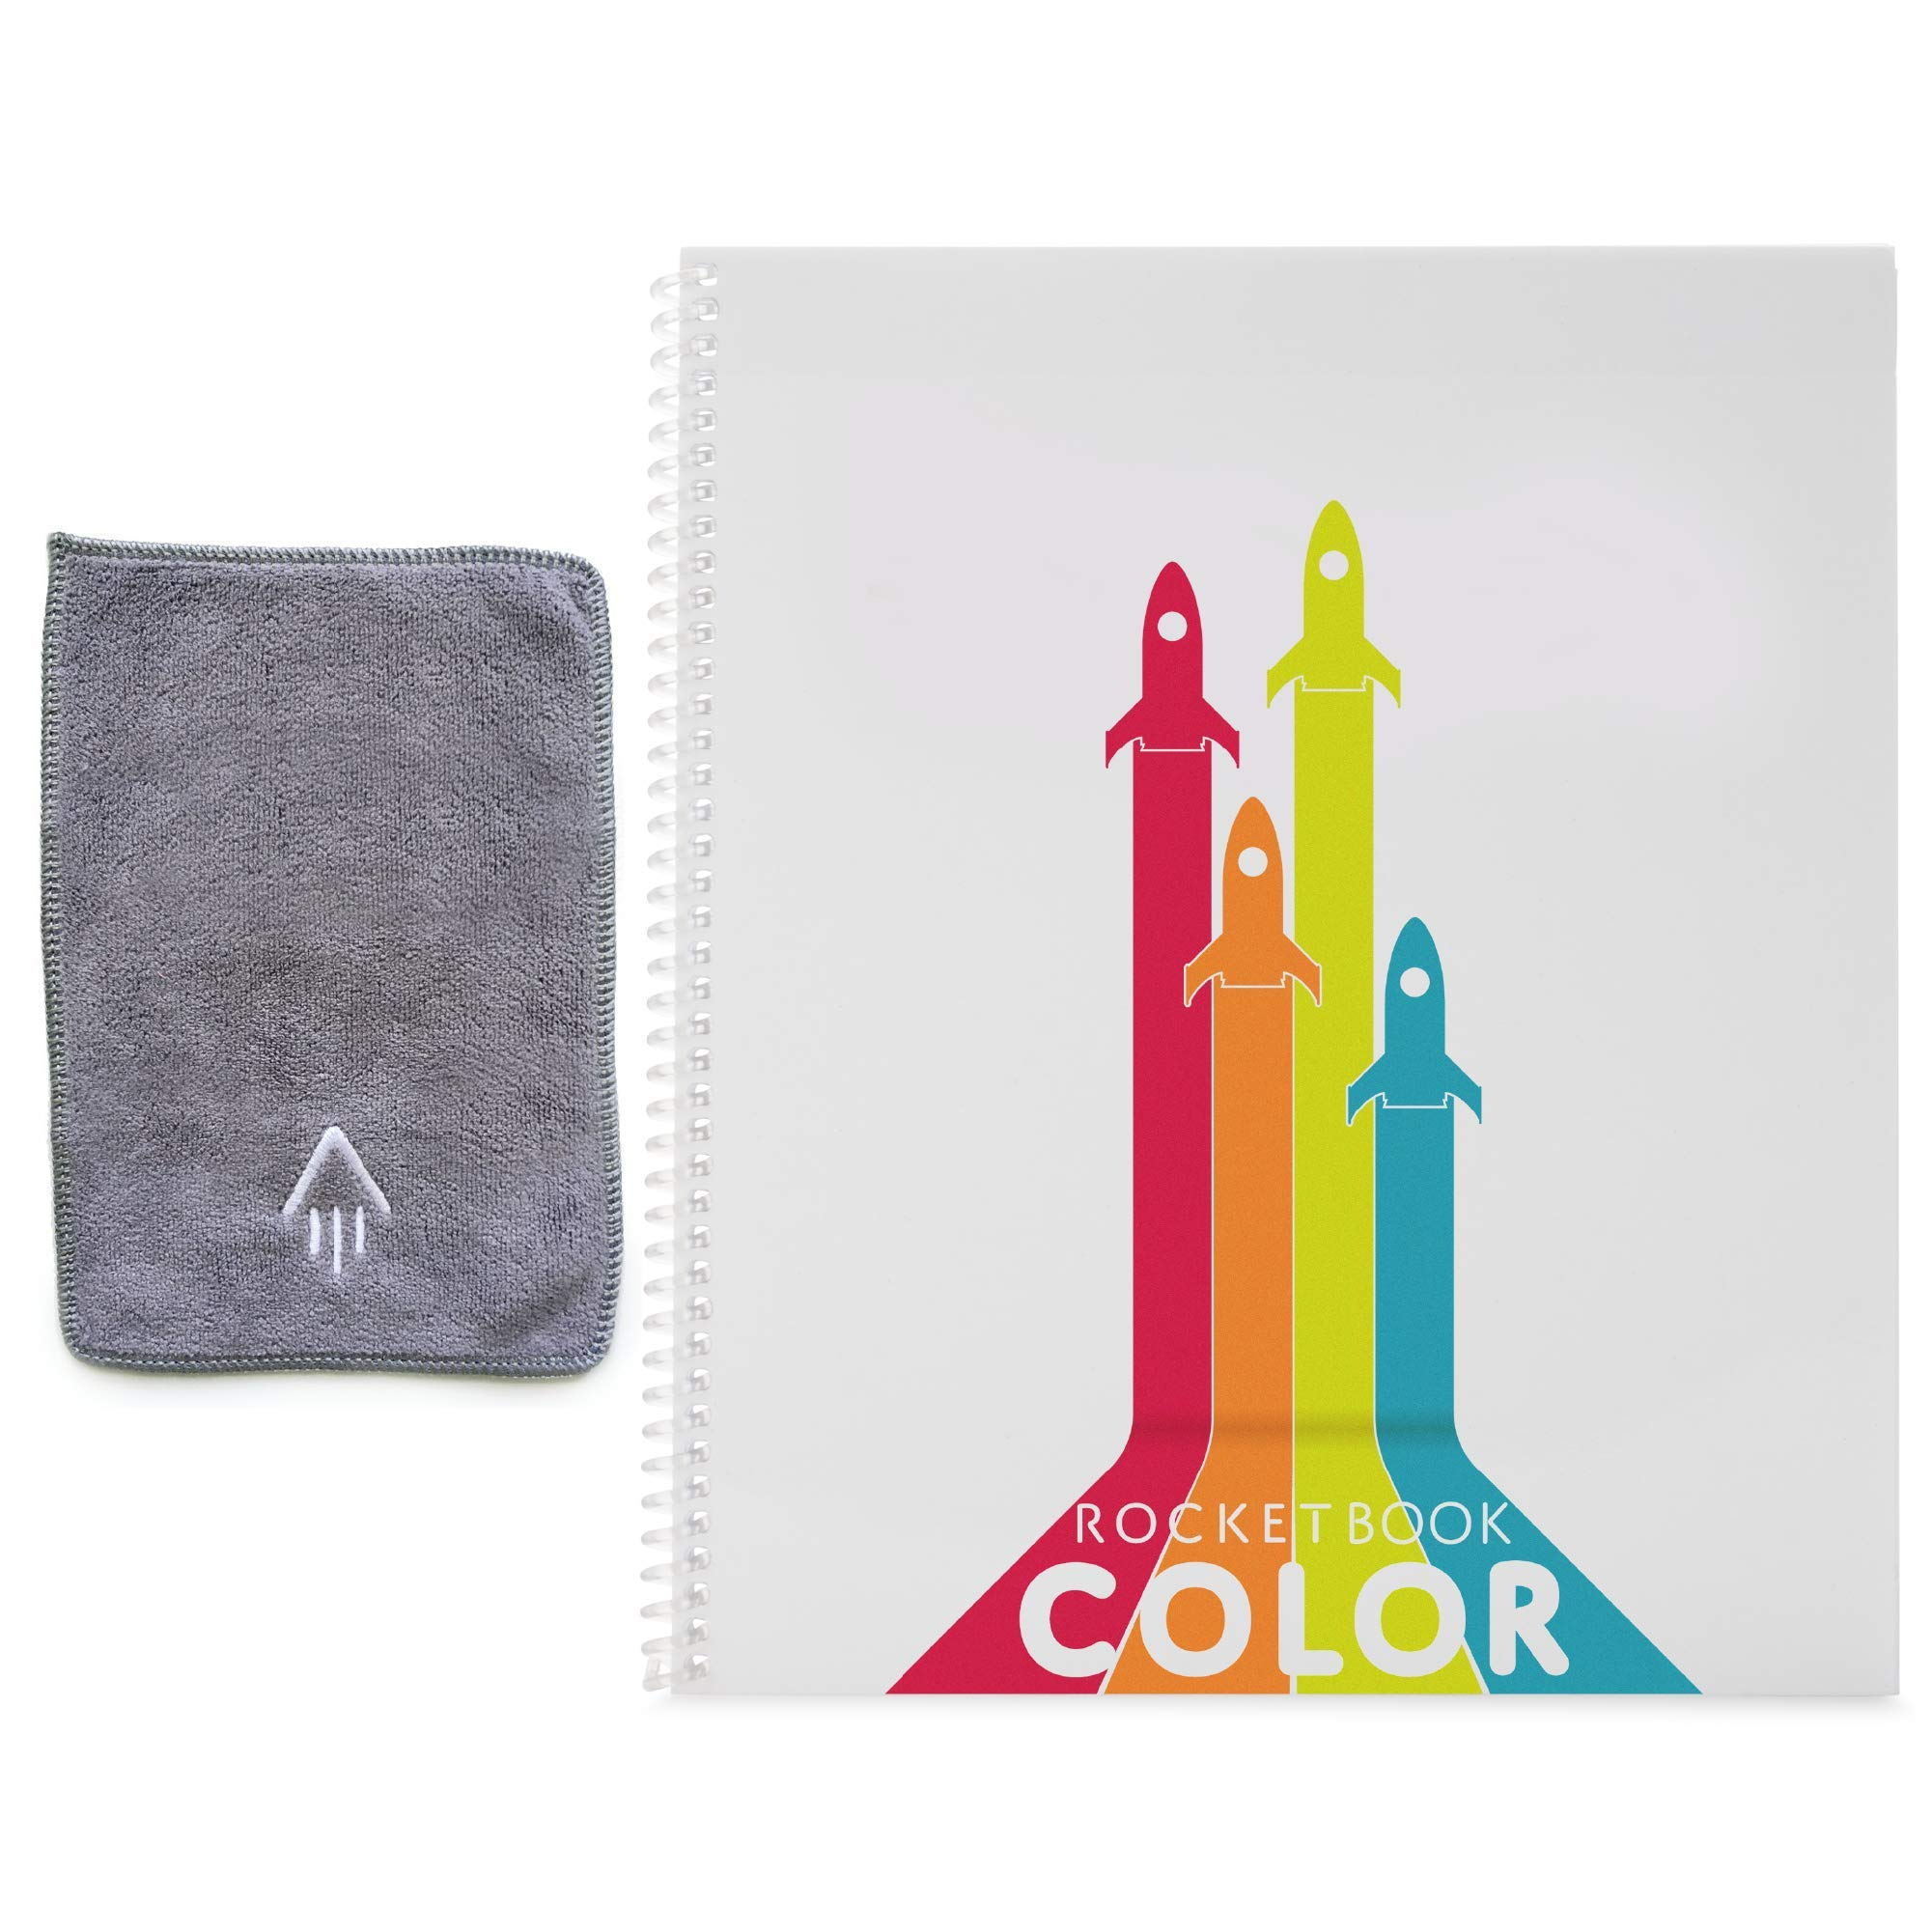 Rocketbook Color Smart Reusable Coloring Notebook - Eco-Friendly Cloud Connected Notebook Works with Dry Erase Markets & Crayons by Rocketbook